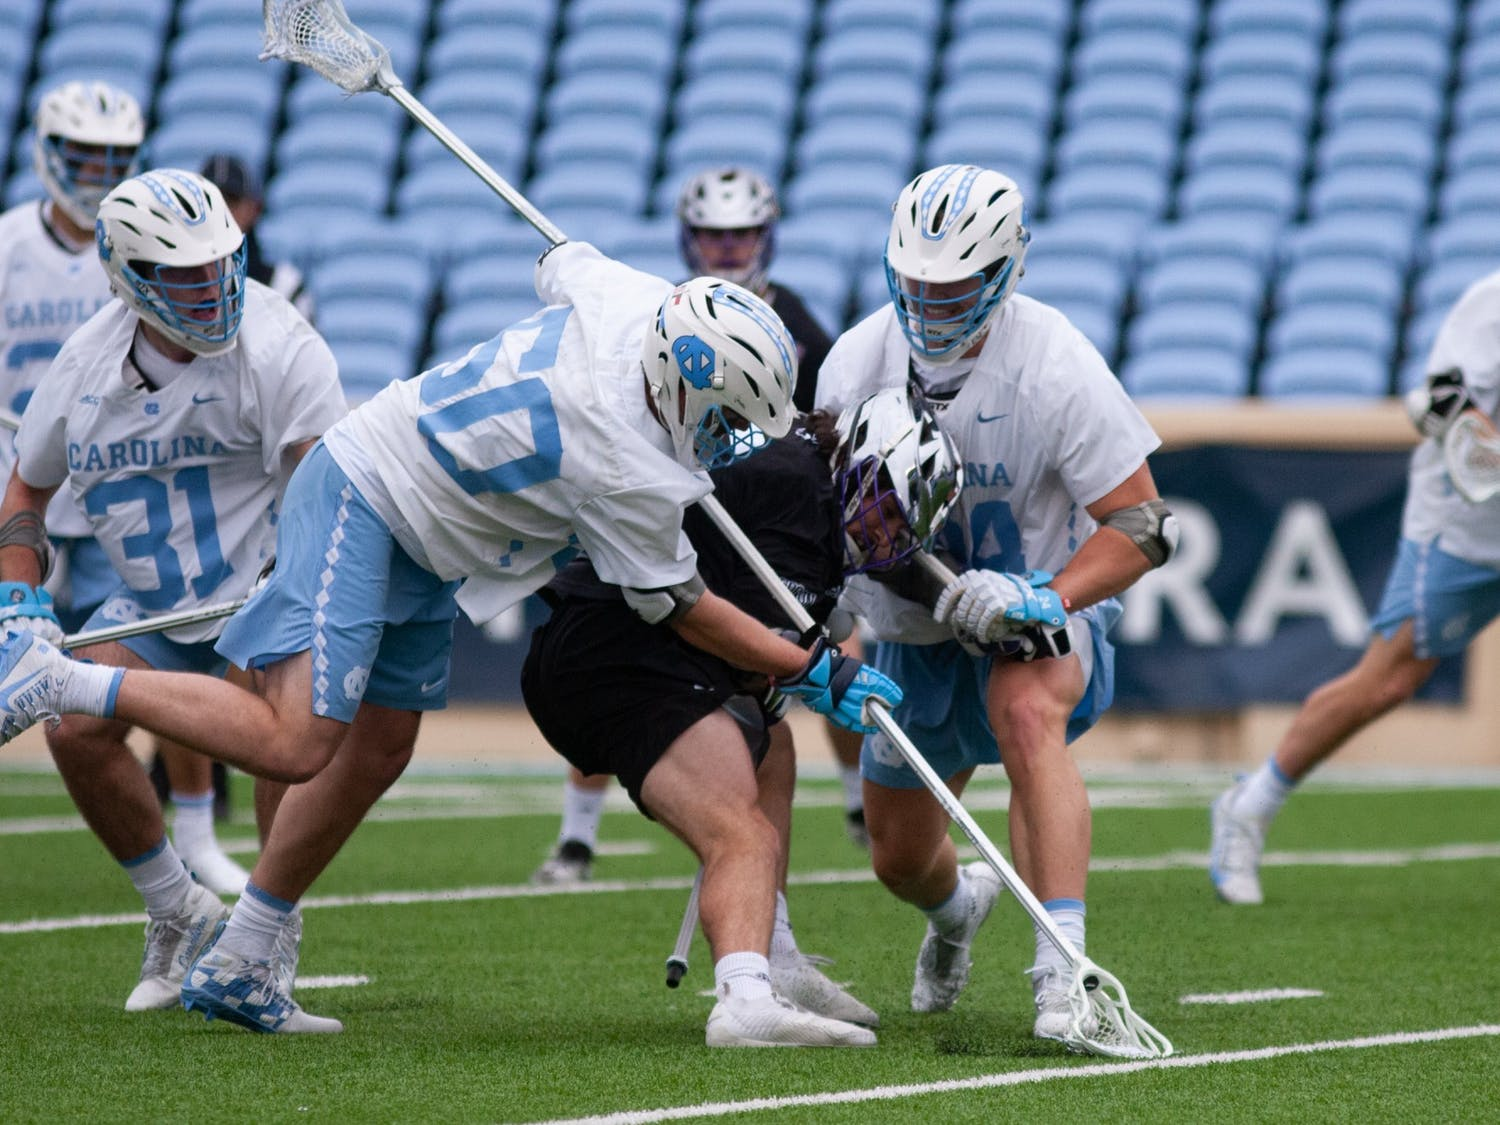 Sophomore defenseman Collin Loughead (50) and junior defenseman Will Bowen (24) try to take possession of the ball. UNC wins against High Point 27-12 at Kenan Stadium on Saturday, Feb. 27, 2021.